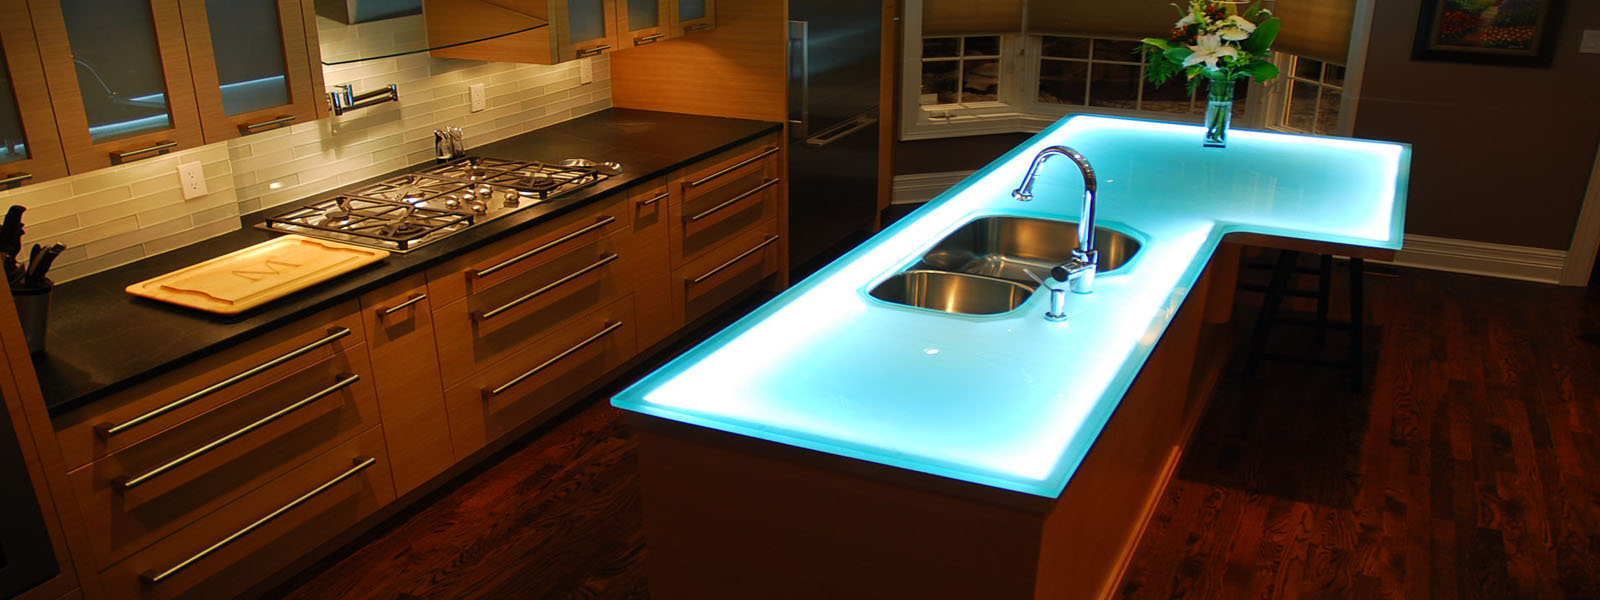 glass countertops custom glass design cbd glass